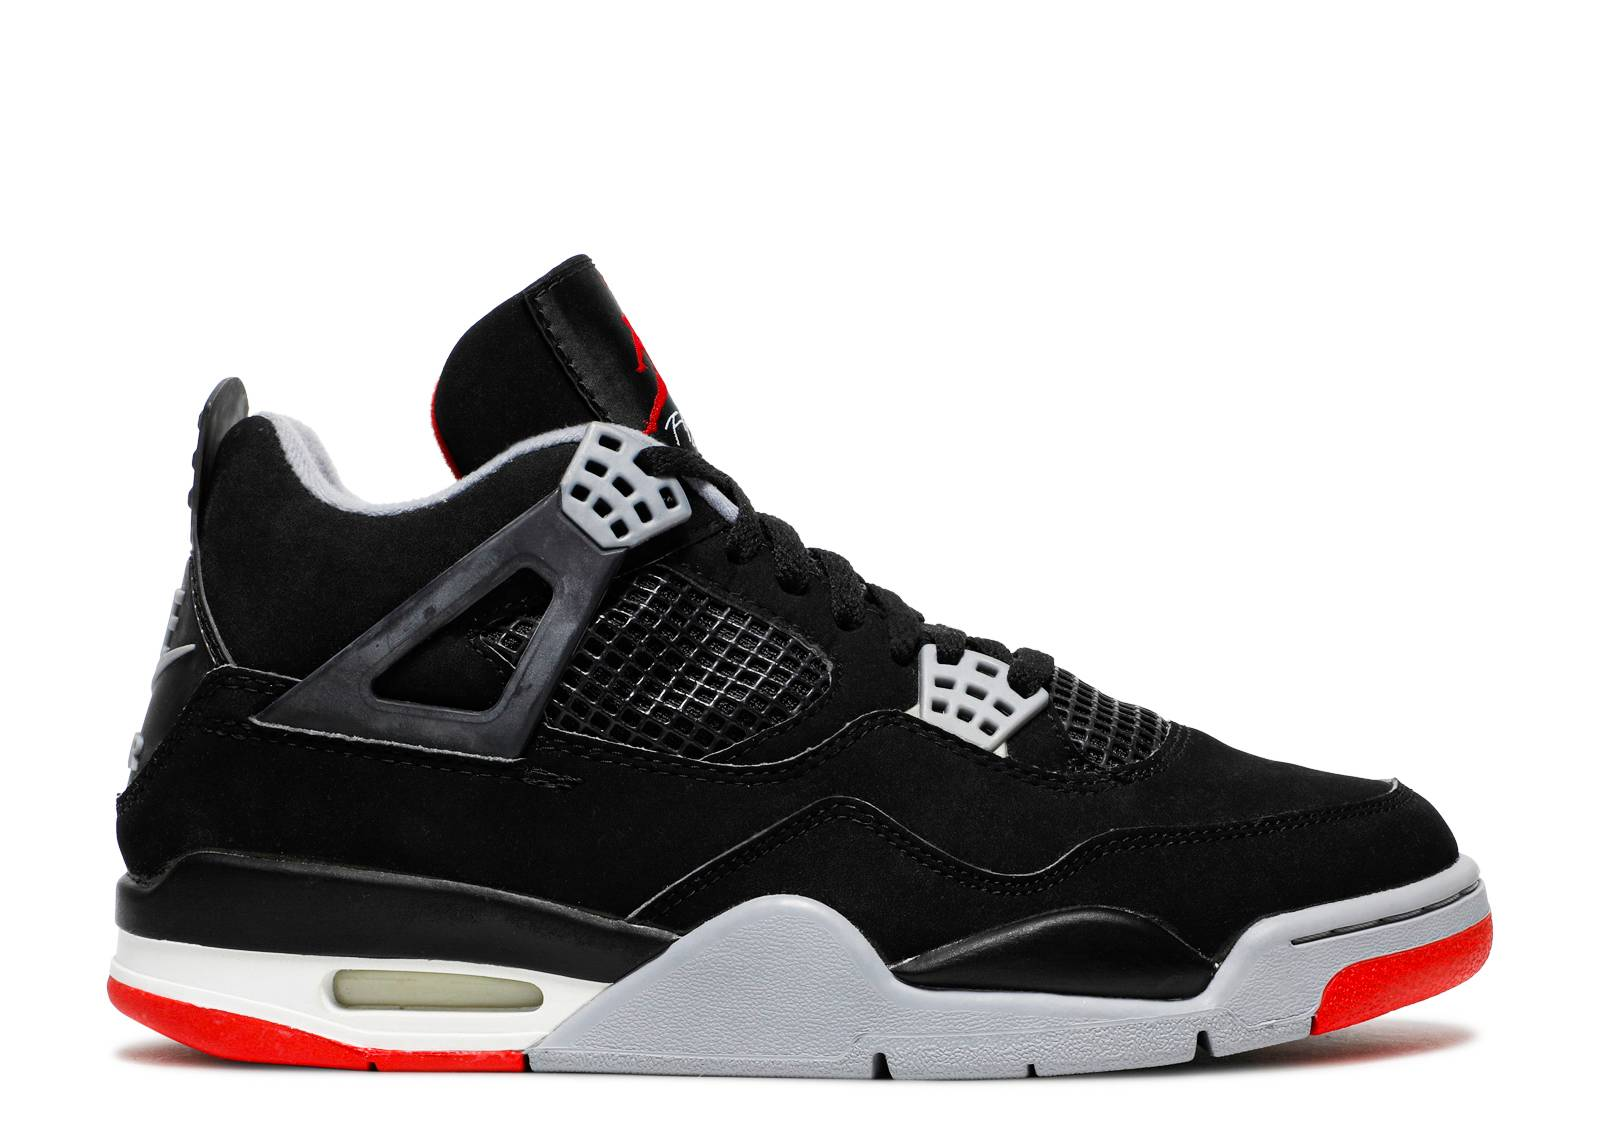 premium selection 856b0 085ef air jordan 4 retro